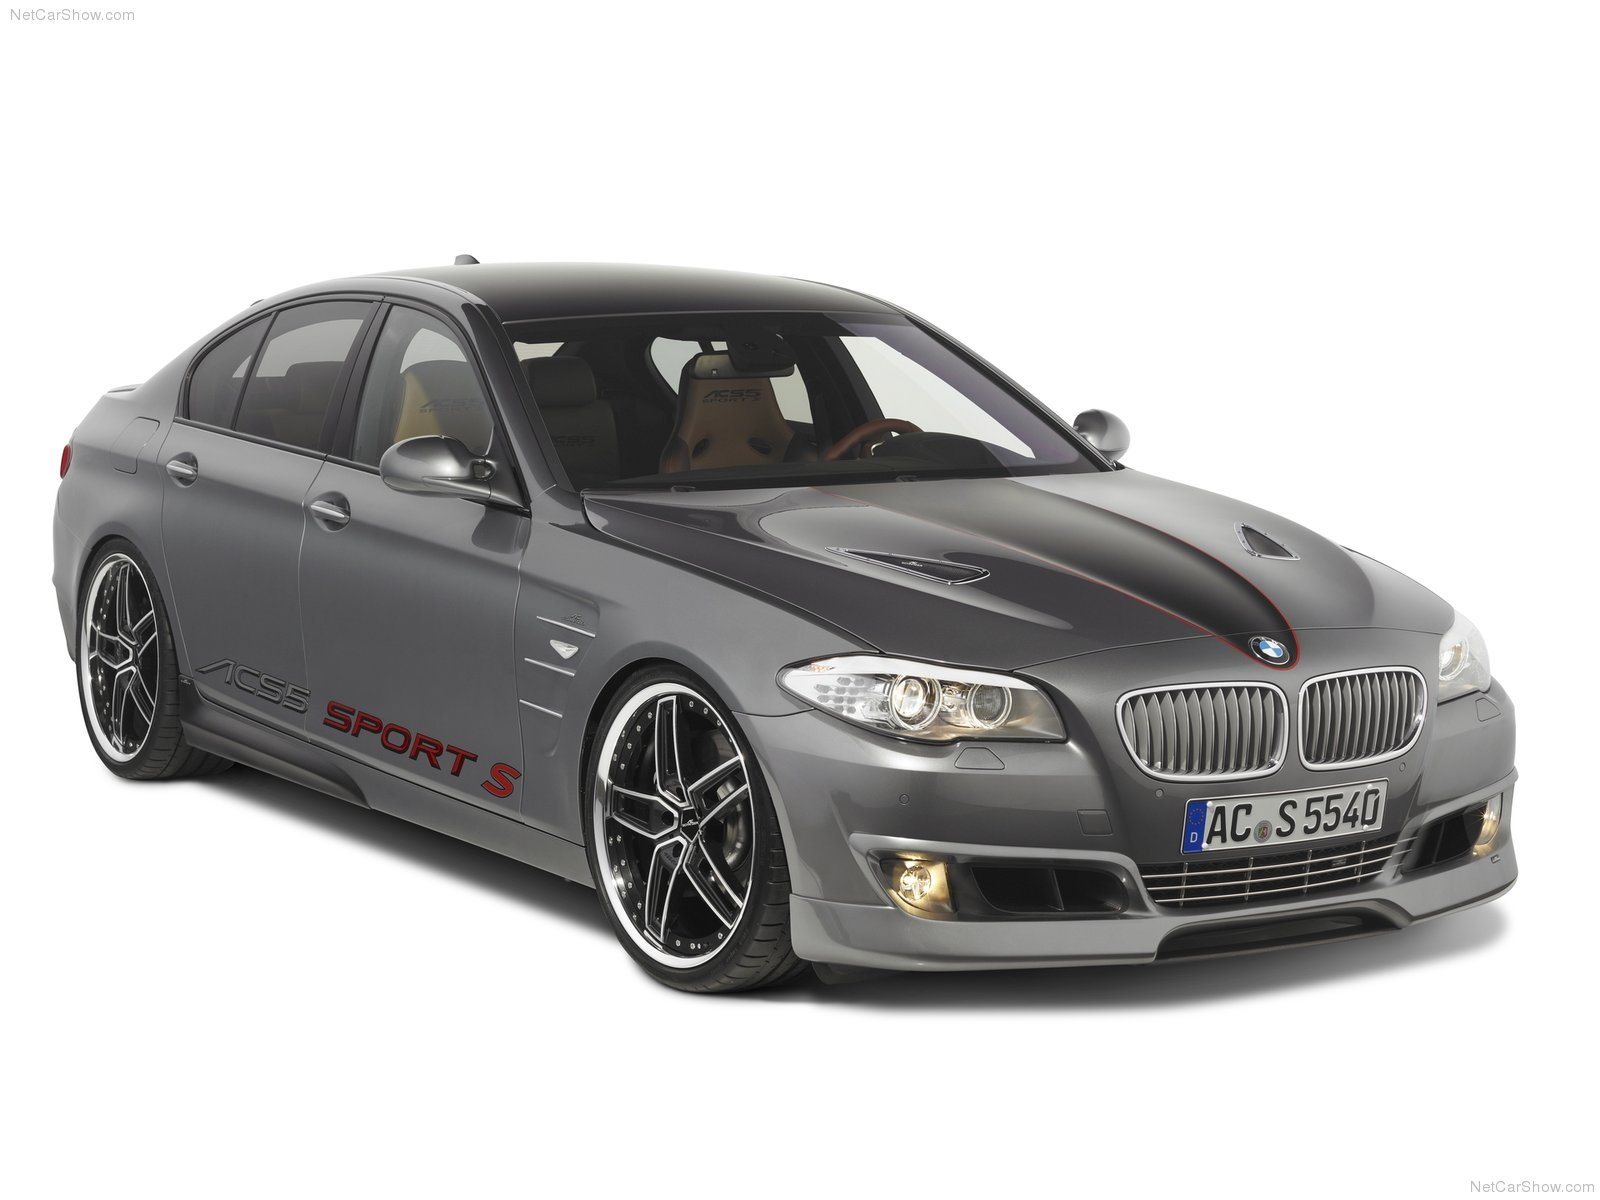 AC Schnitzer ACS5 Sport S photo 78476